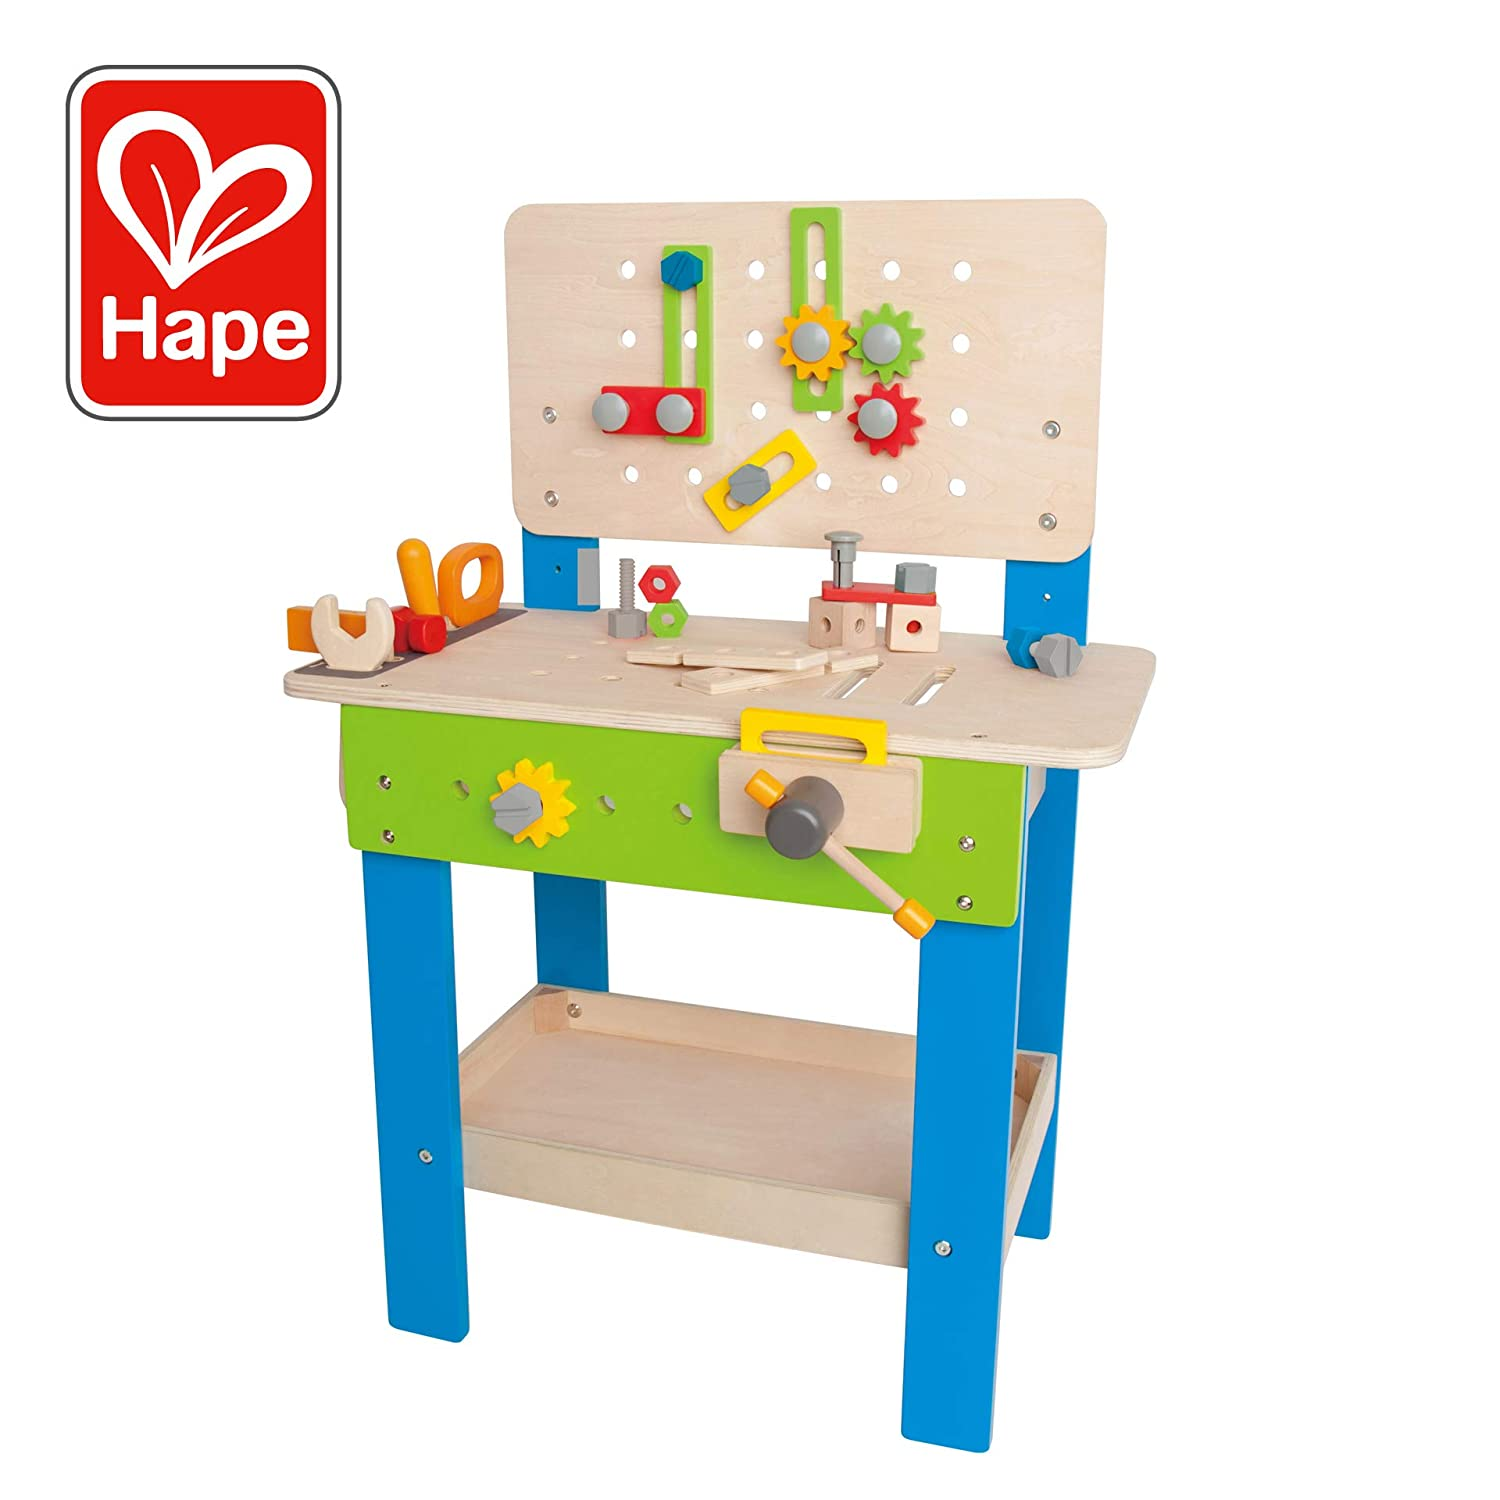 Top 9 Best Kids Toy Tool Bench Reviews in 2021 13